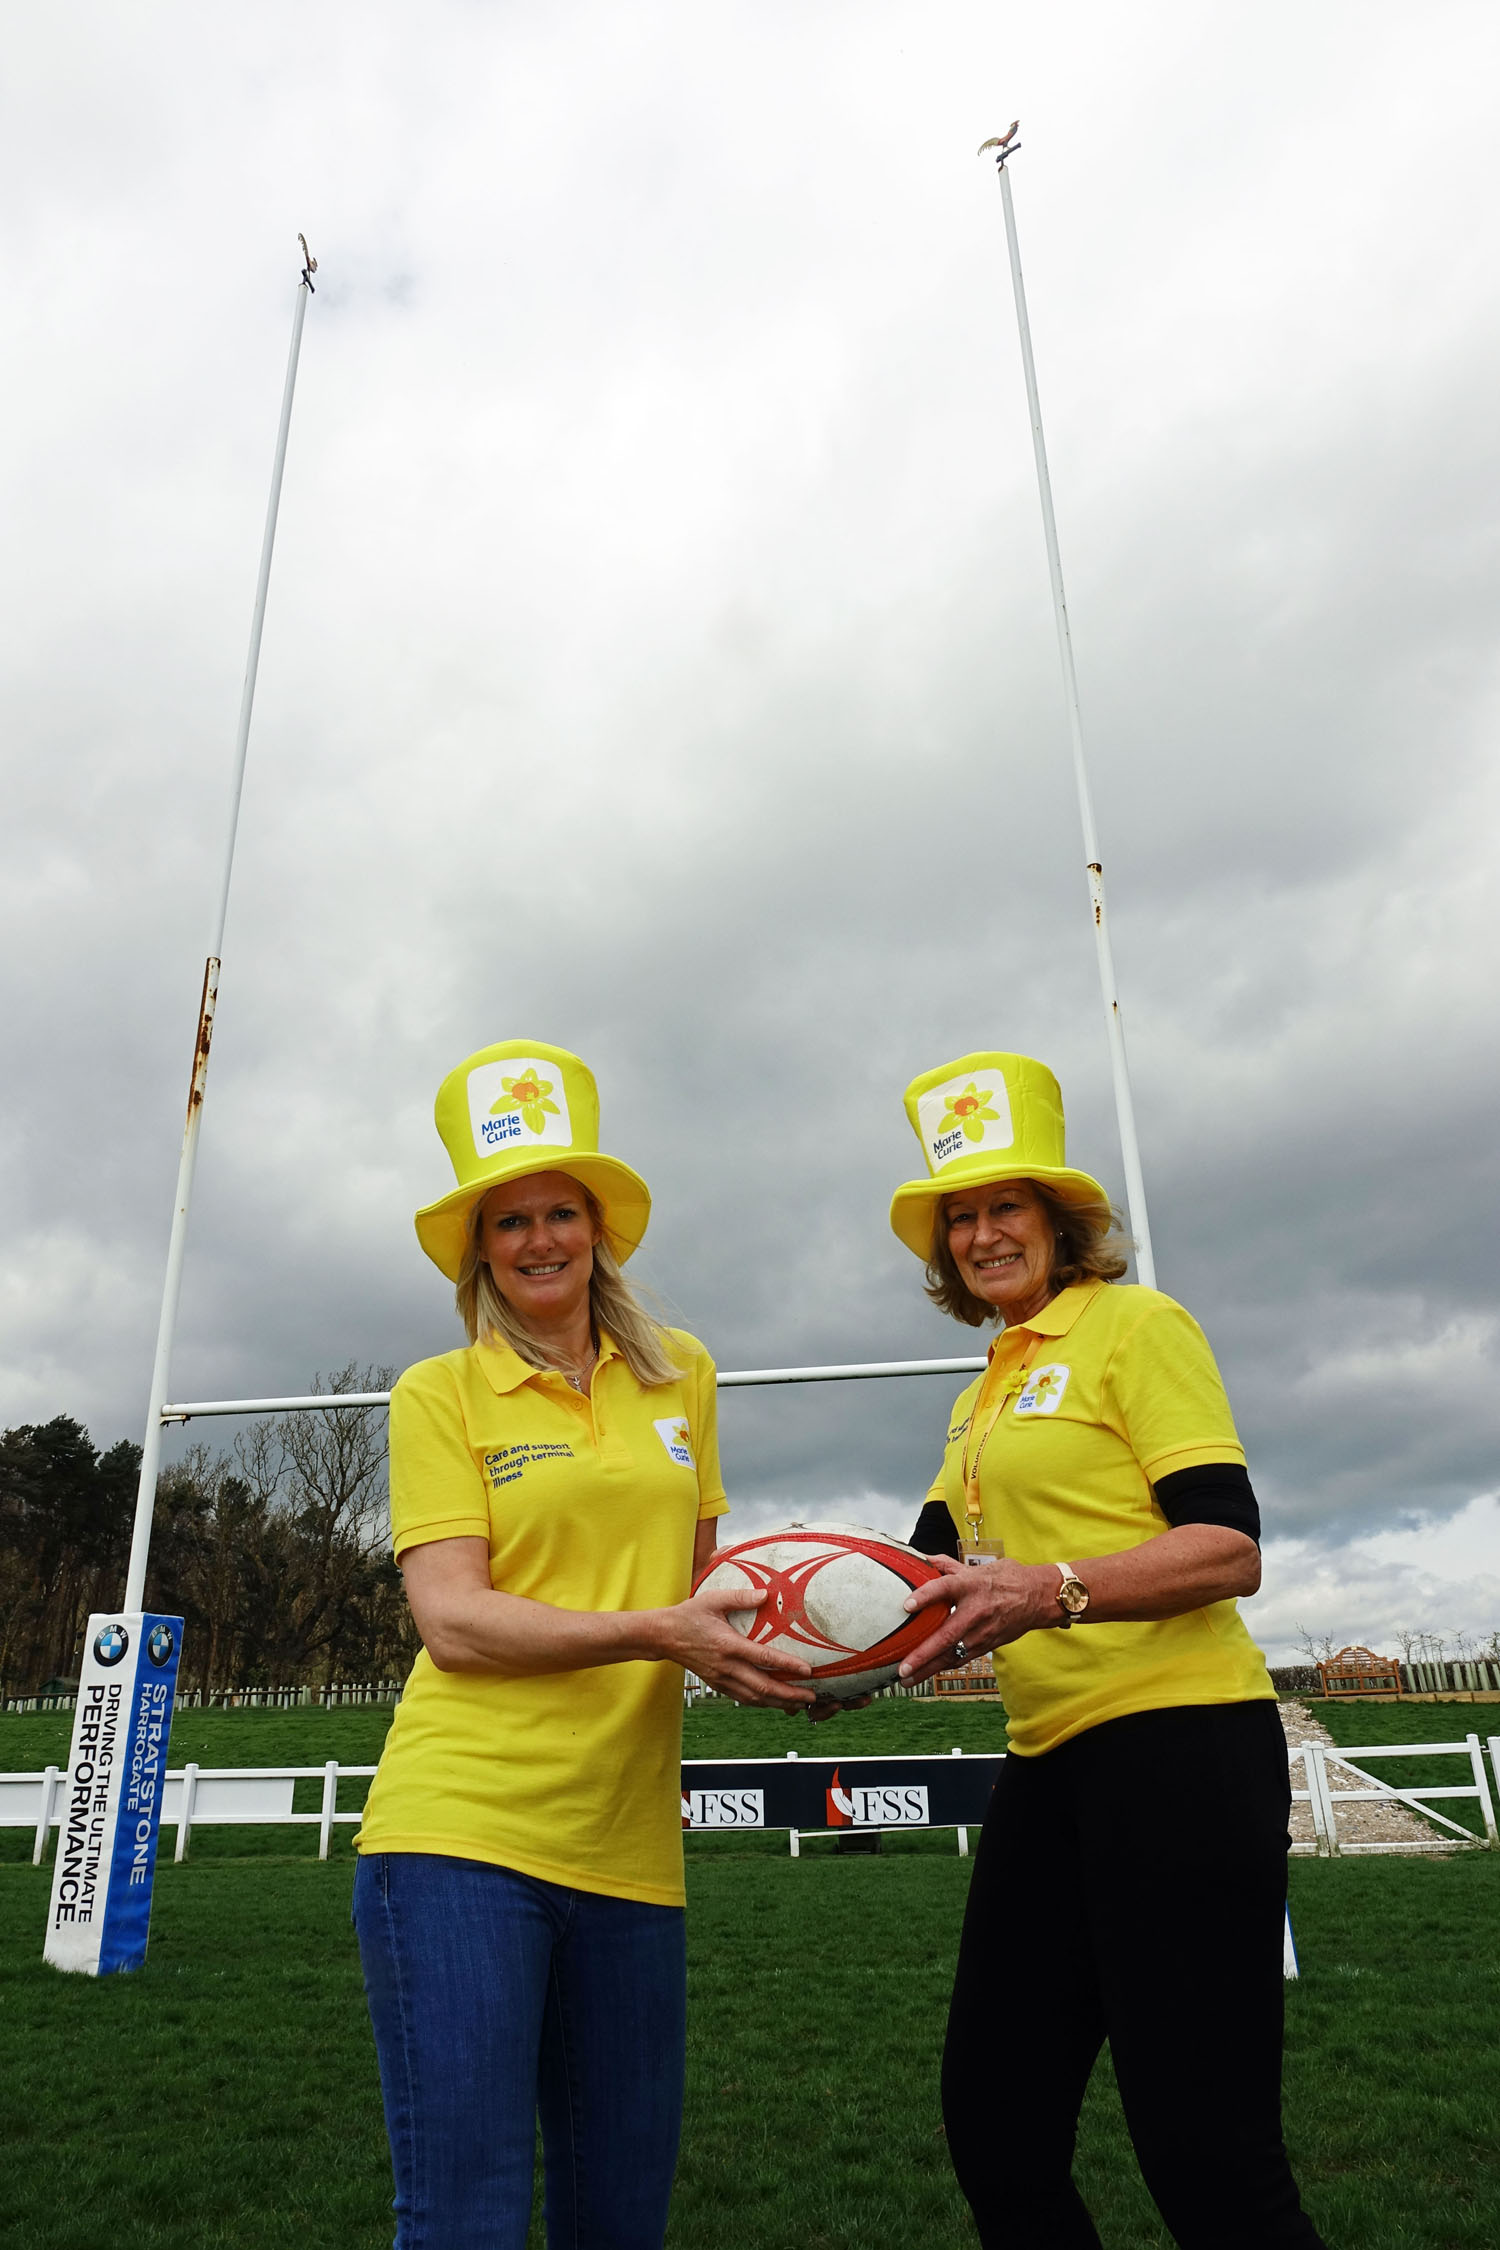 Nicola Appleton and Jo Finnegan - Harrogate Marie Curie Fundraising Group